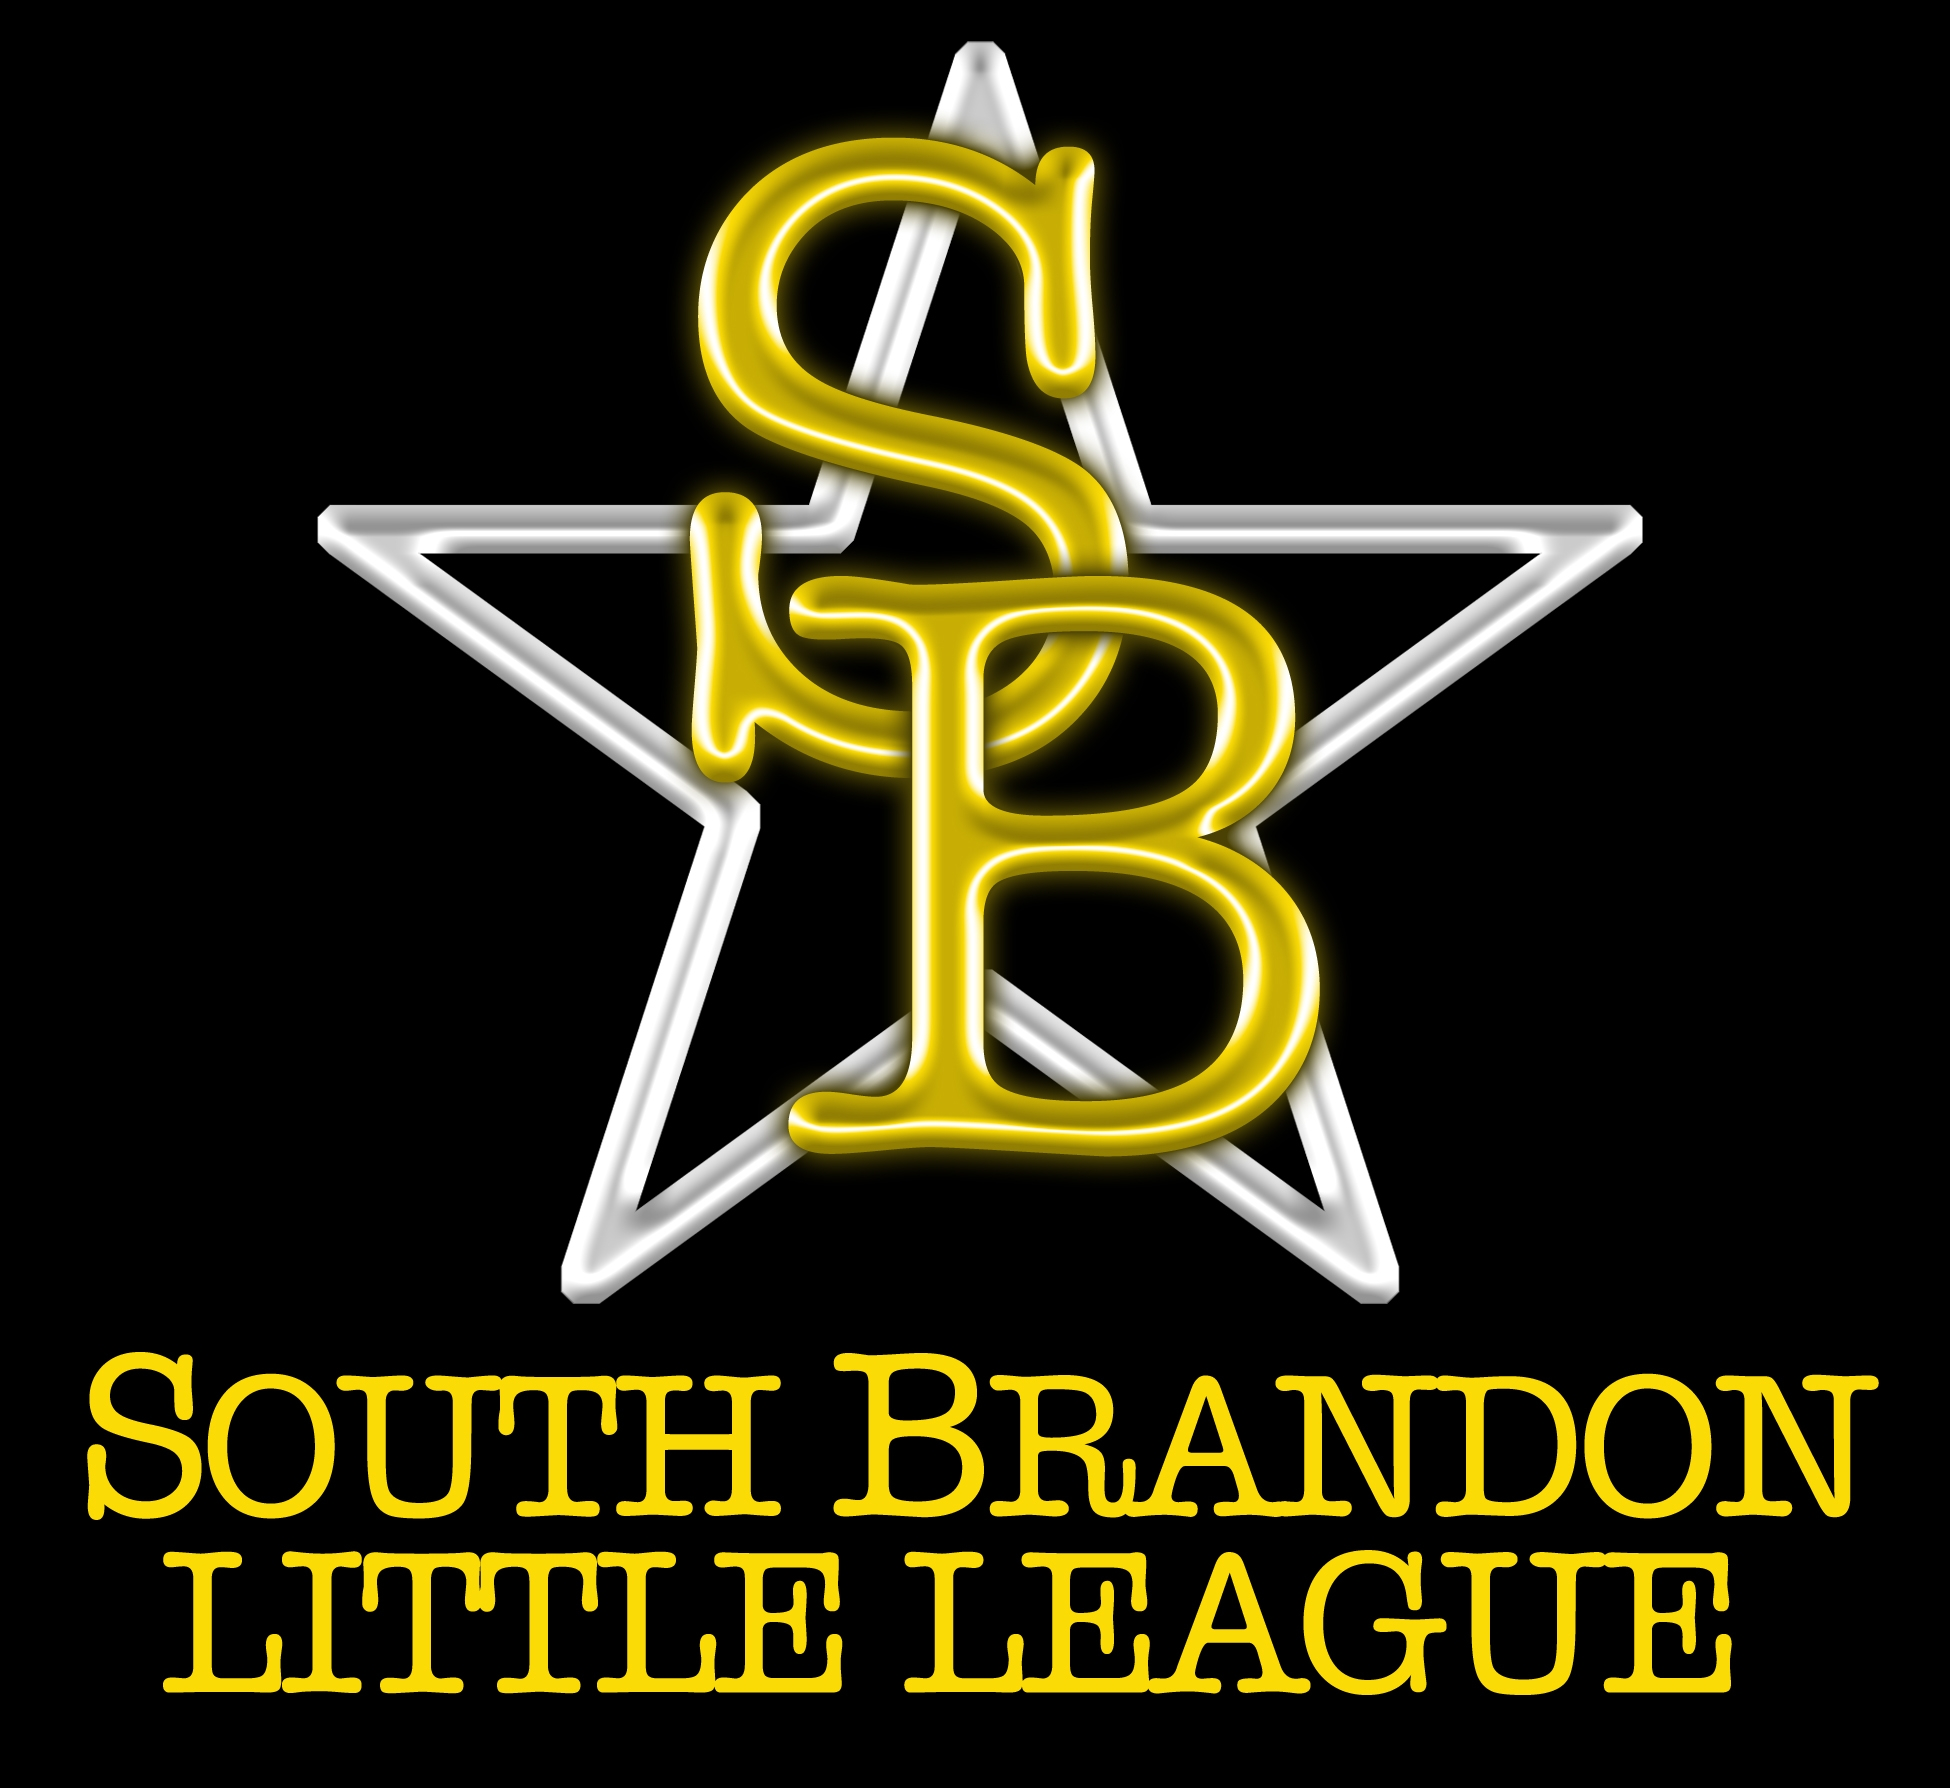 South Brandon Little League